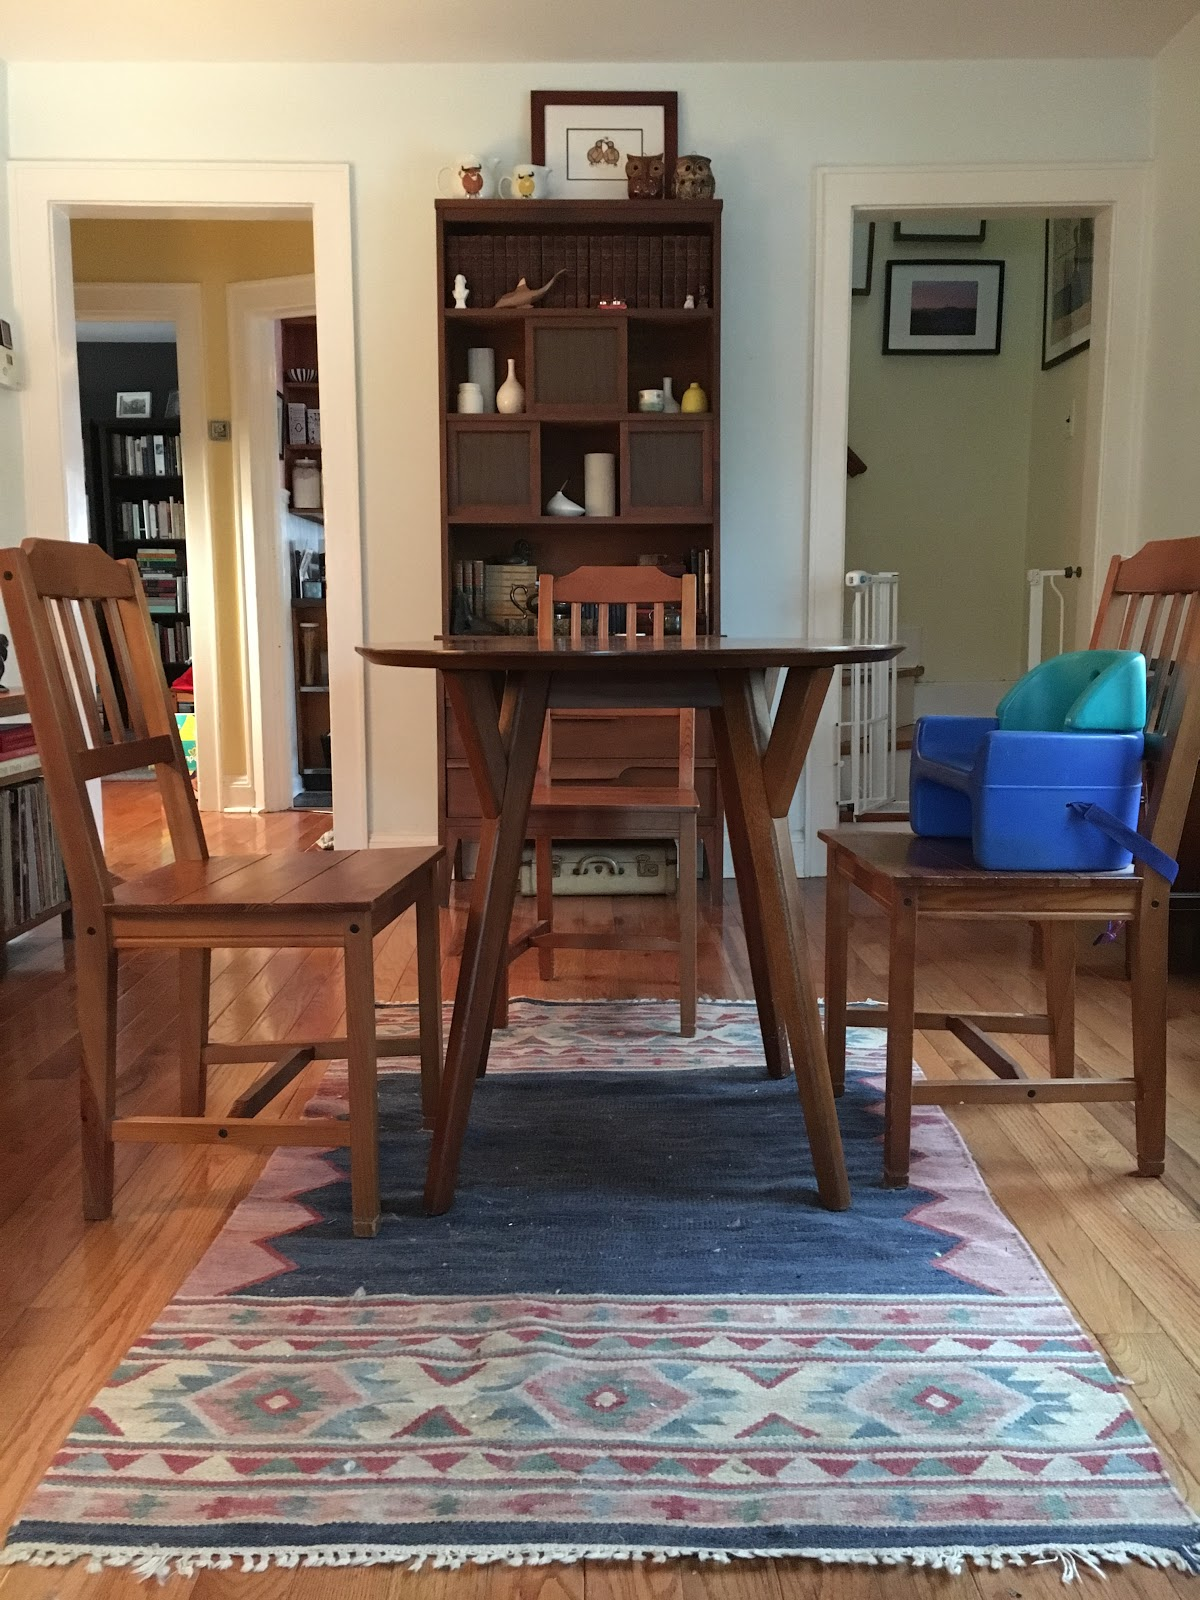 Crabby Fox Dining Chairs the Myth of Tar s Porter Mid Century